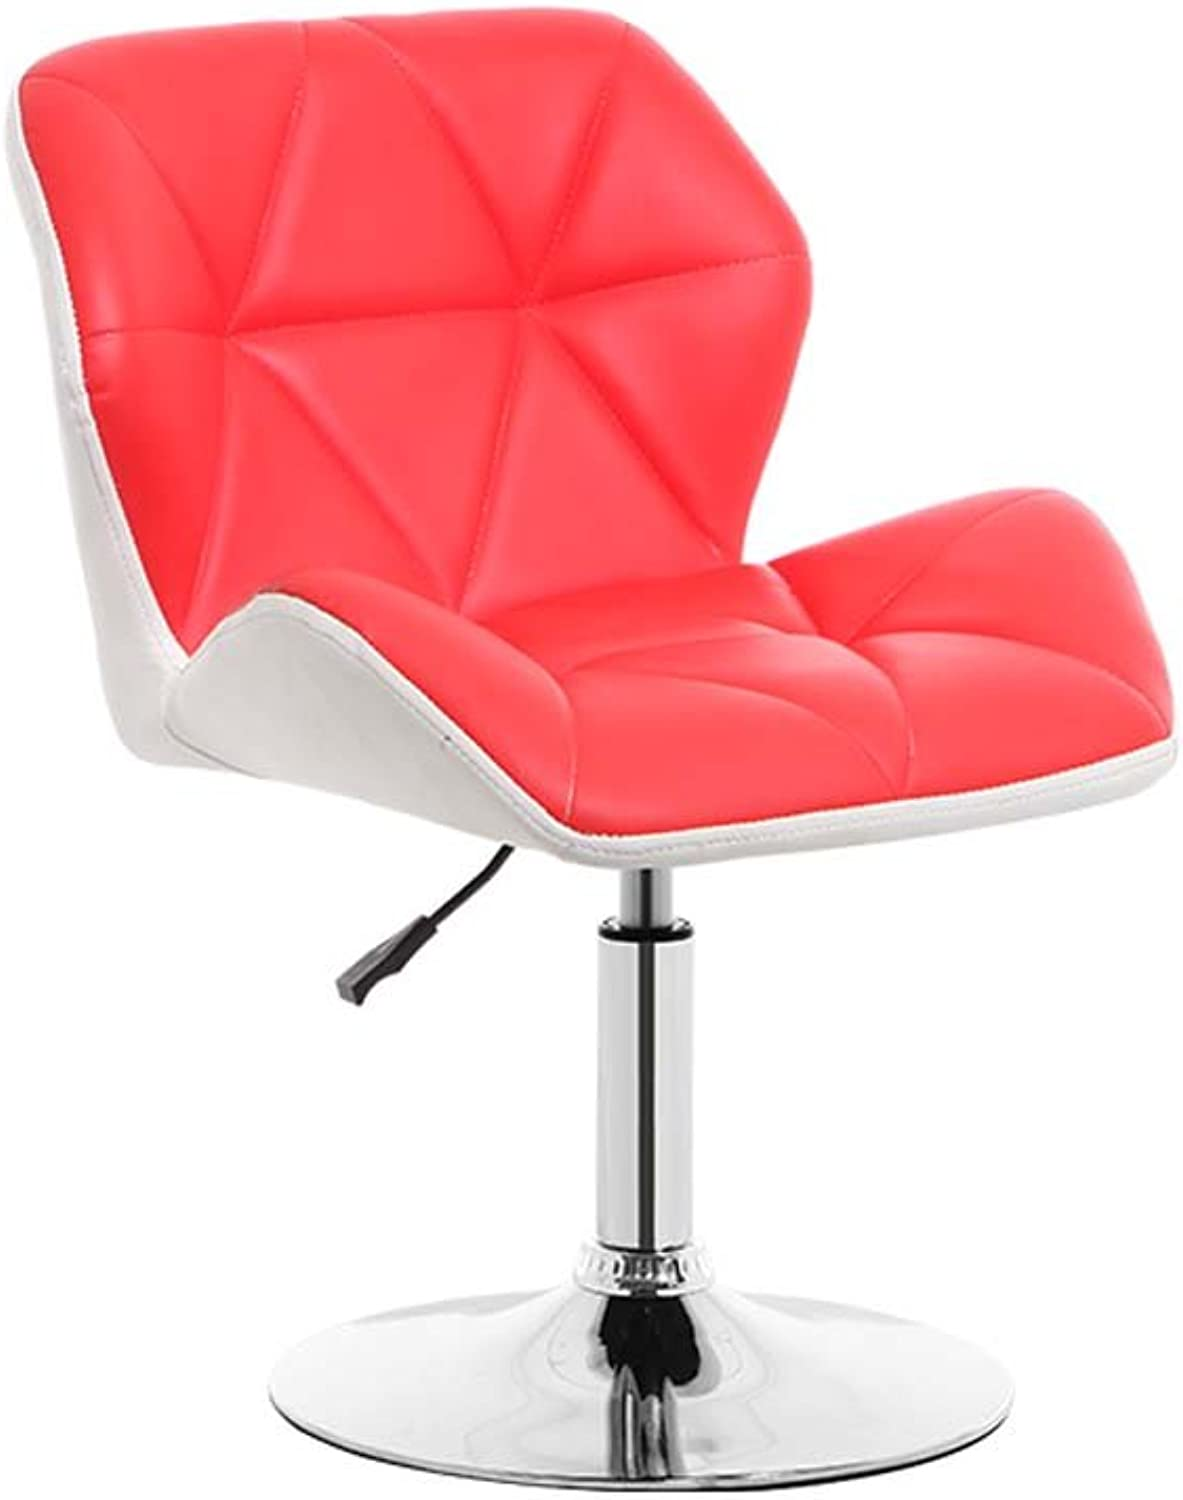 WFFXLL Bar Chair bar Stool European high Stool Bar Stool (color   White and red)